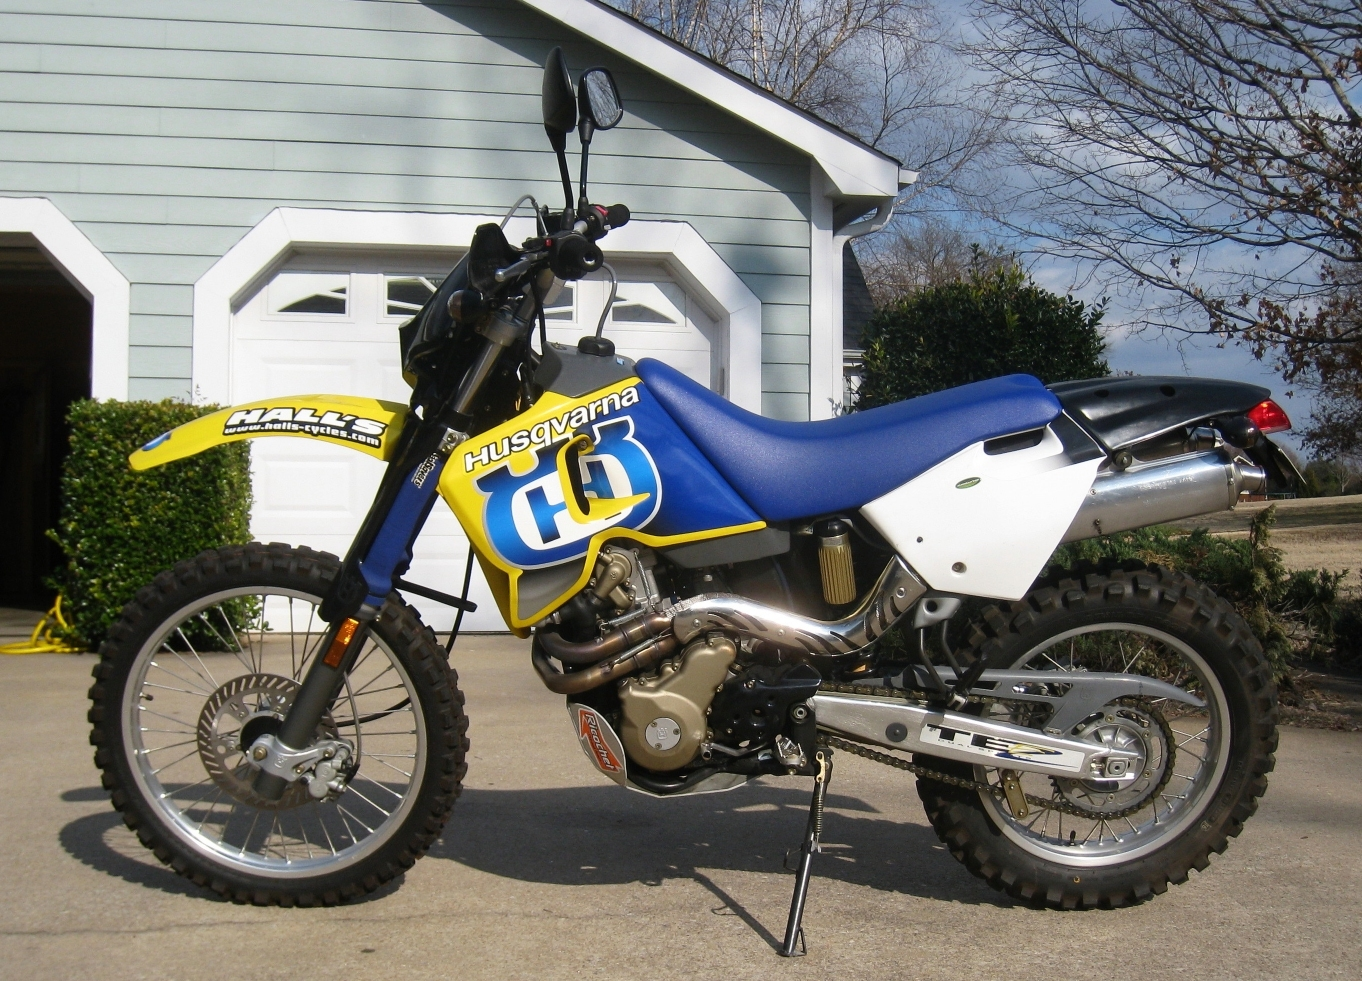 TE610 year 2000 era husqvarna te 610 info thread page 9 adventure rider te 610 wiring diagram at crackthecode.co